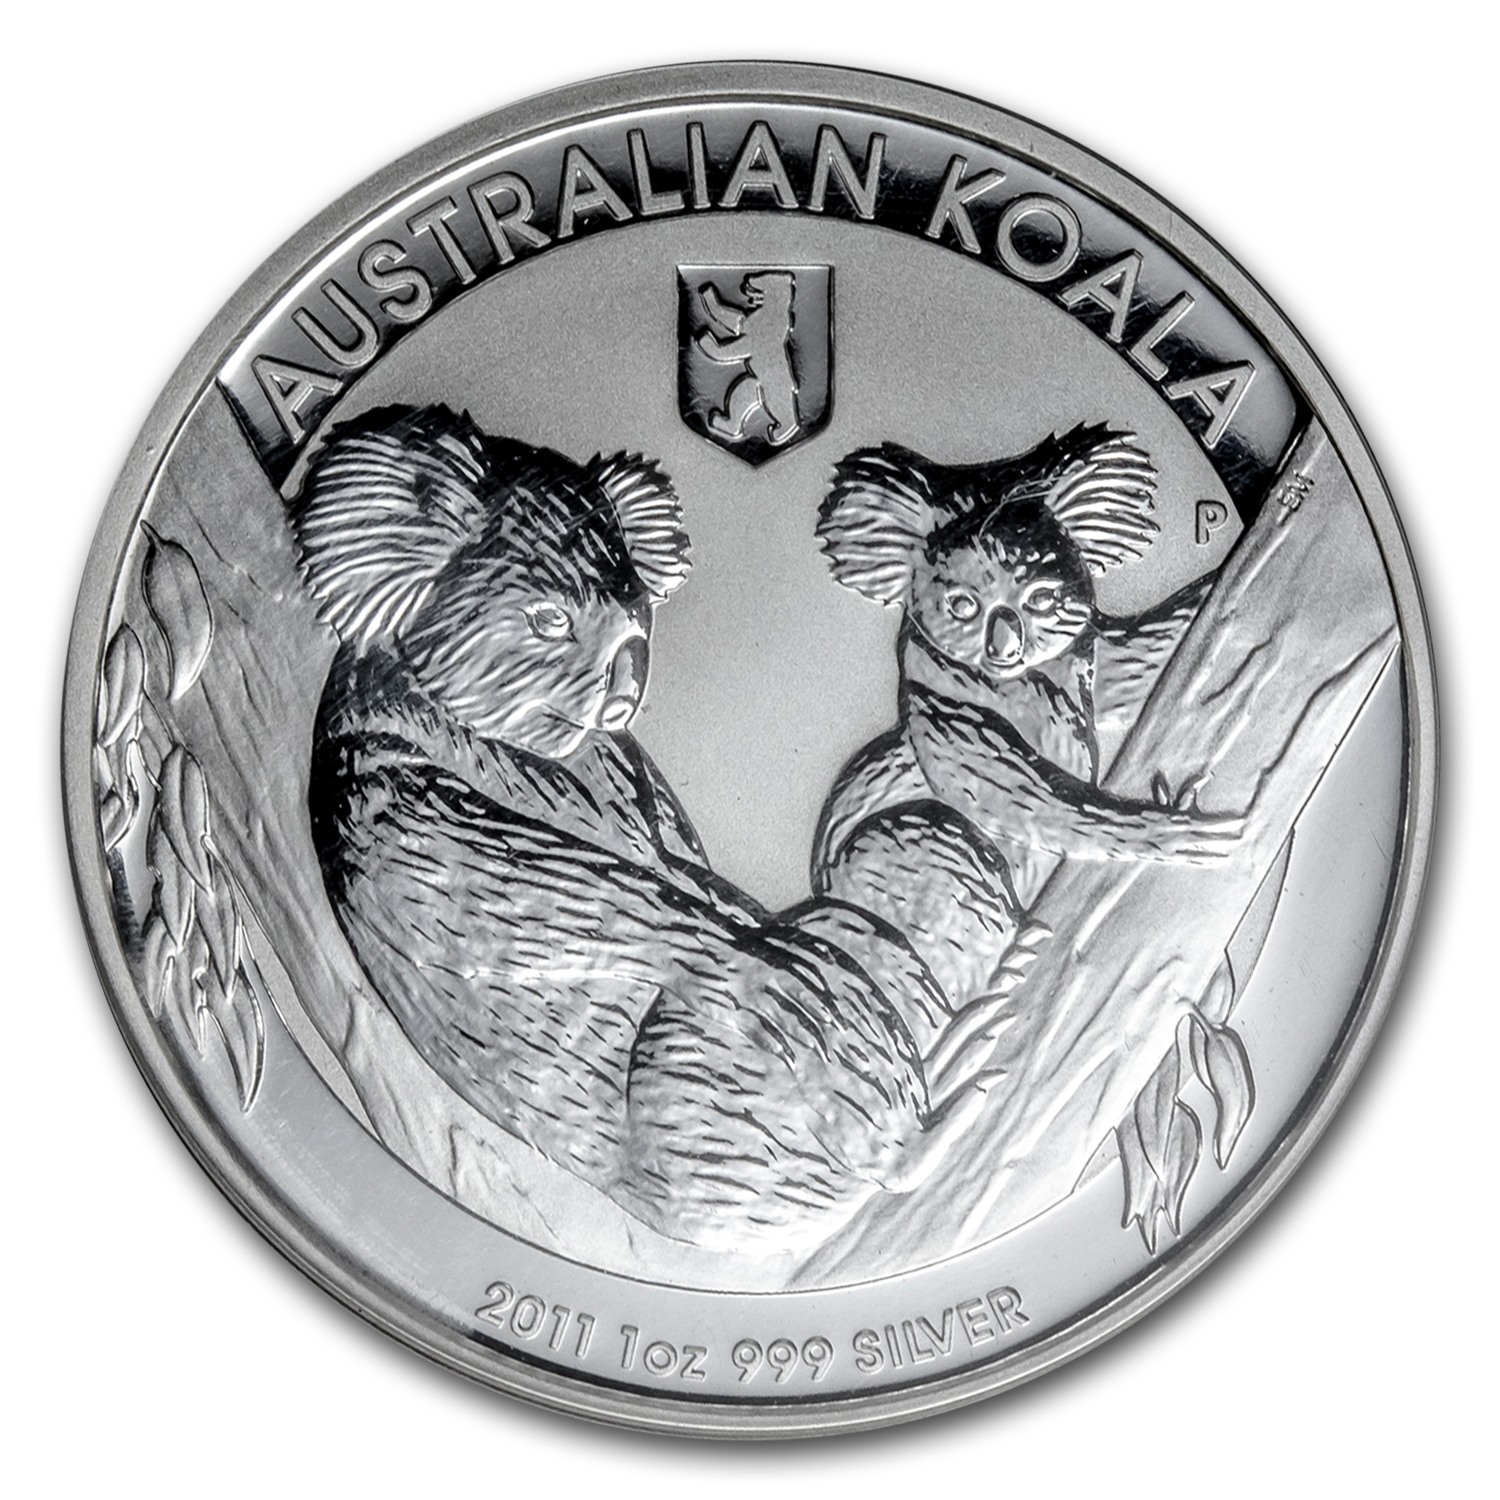 2011 1 oz Silver Australian Koala with Berlin Privy